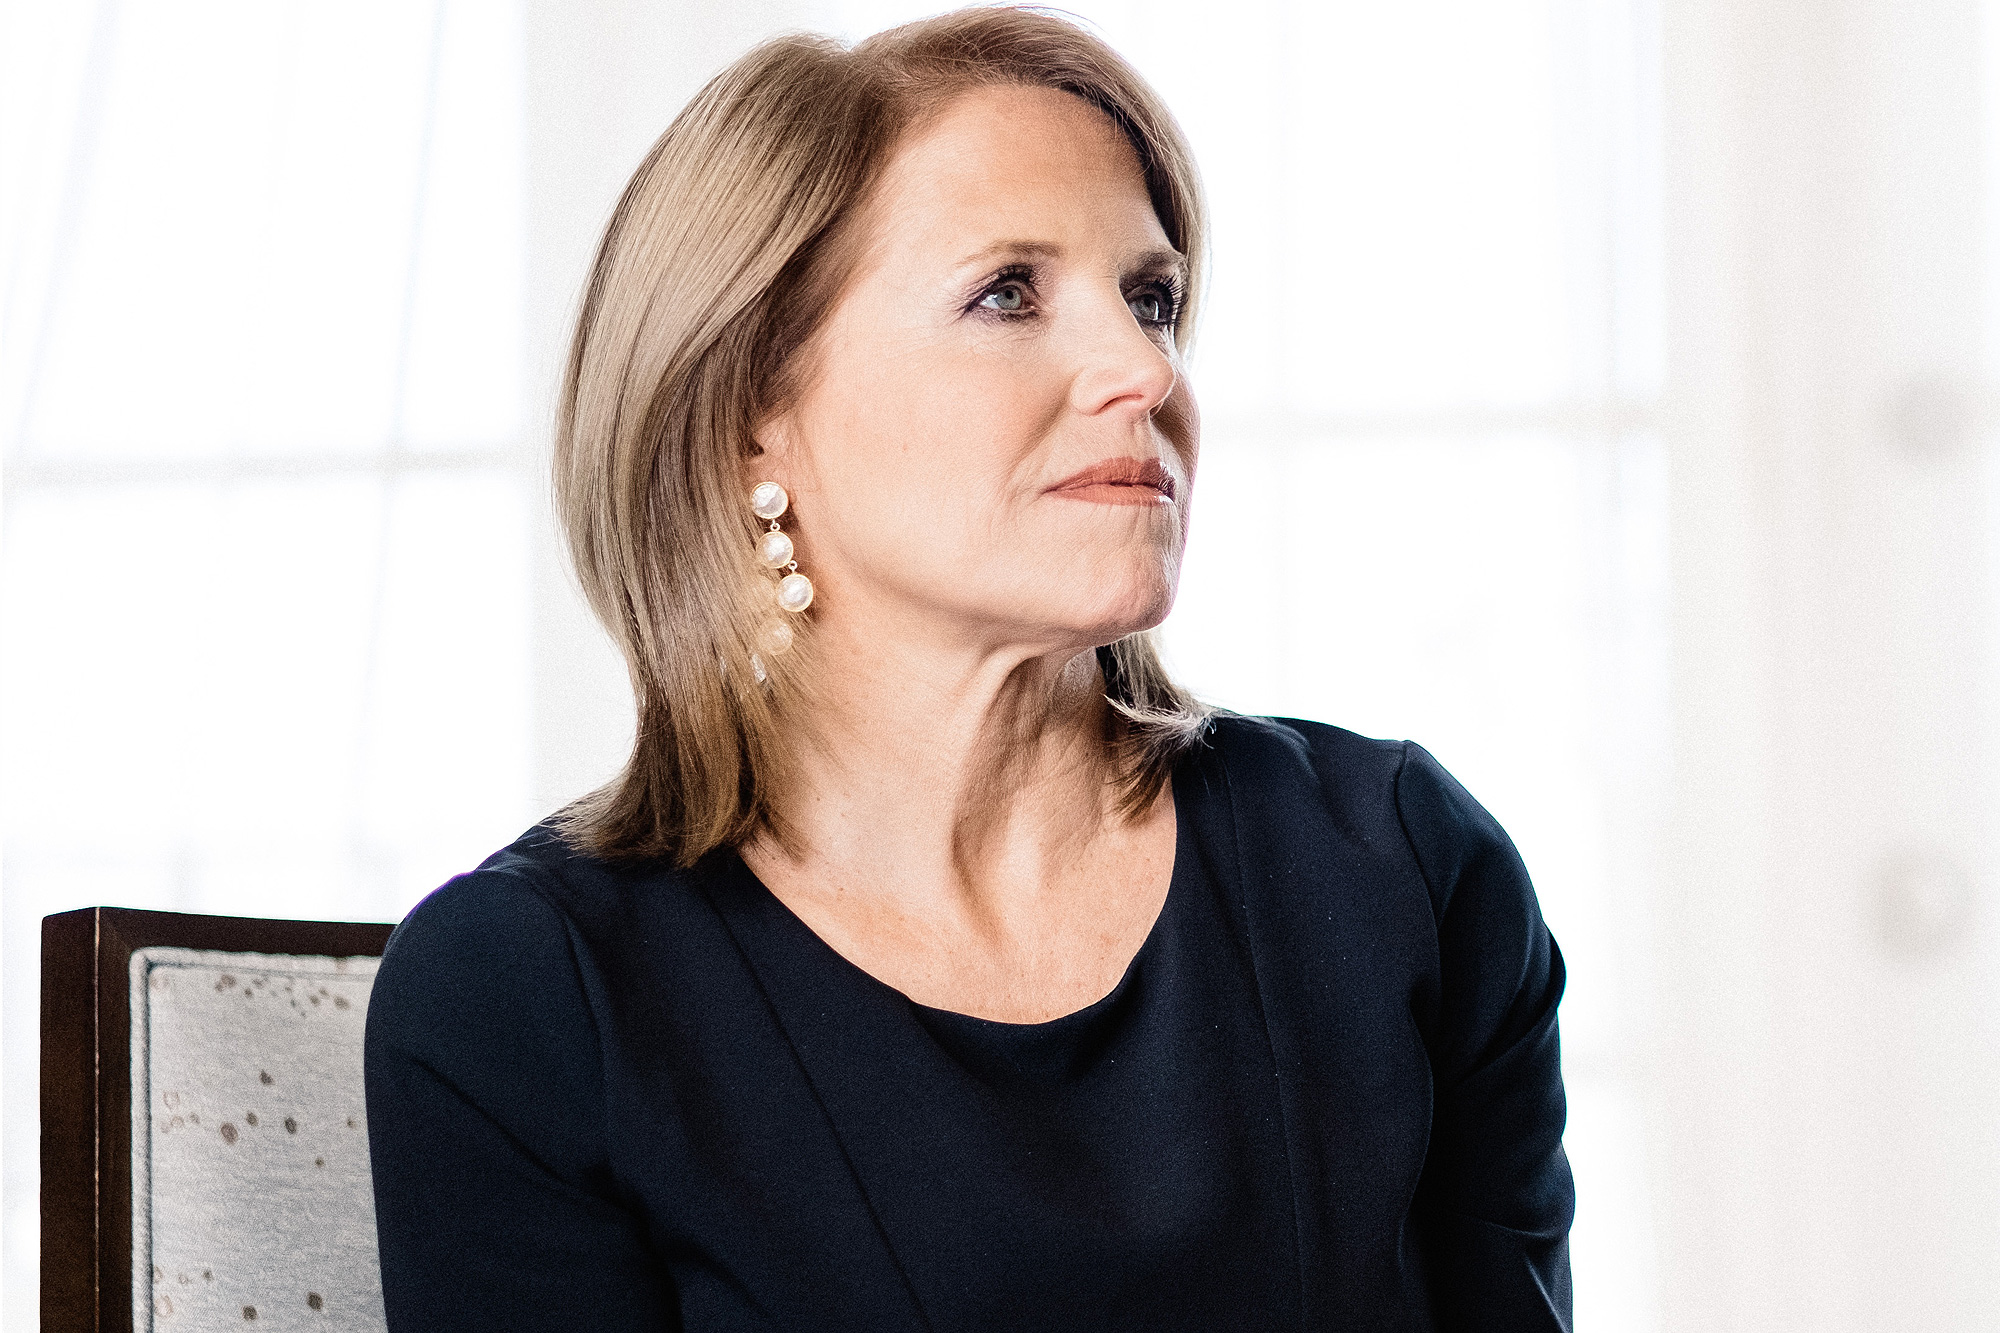 Katie Couric Exclusive Photoshoot For The EPIX Original Documentary 'Under The Gun'